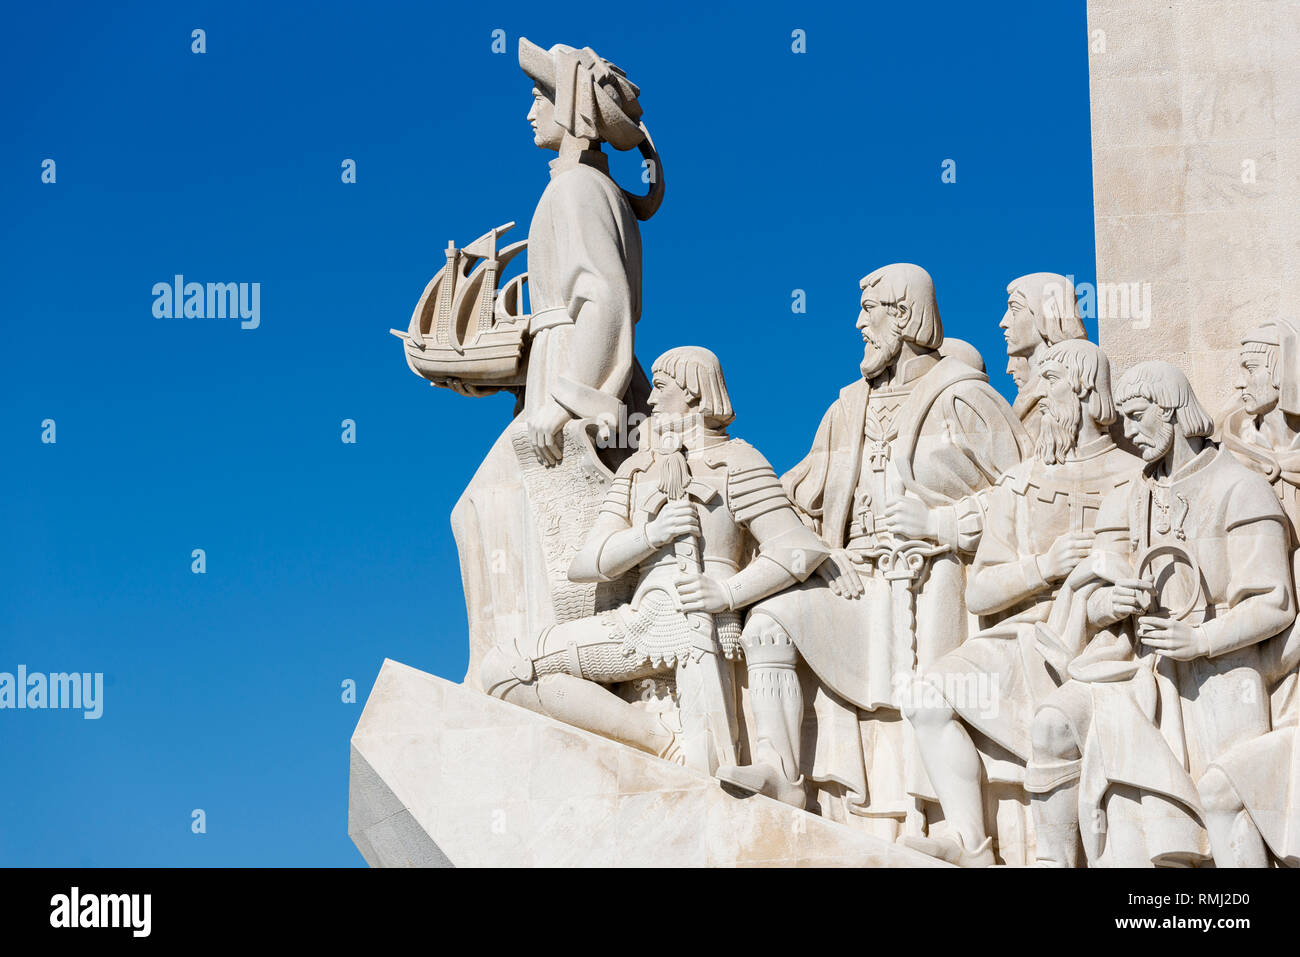 Henry the navigator, king Alfonso V, Vasco da Gama, Pedro Alvarez Cabral and Fernao de Magalhaes on the  Monument to the Discoveries in Lisbon - Stock Image